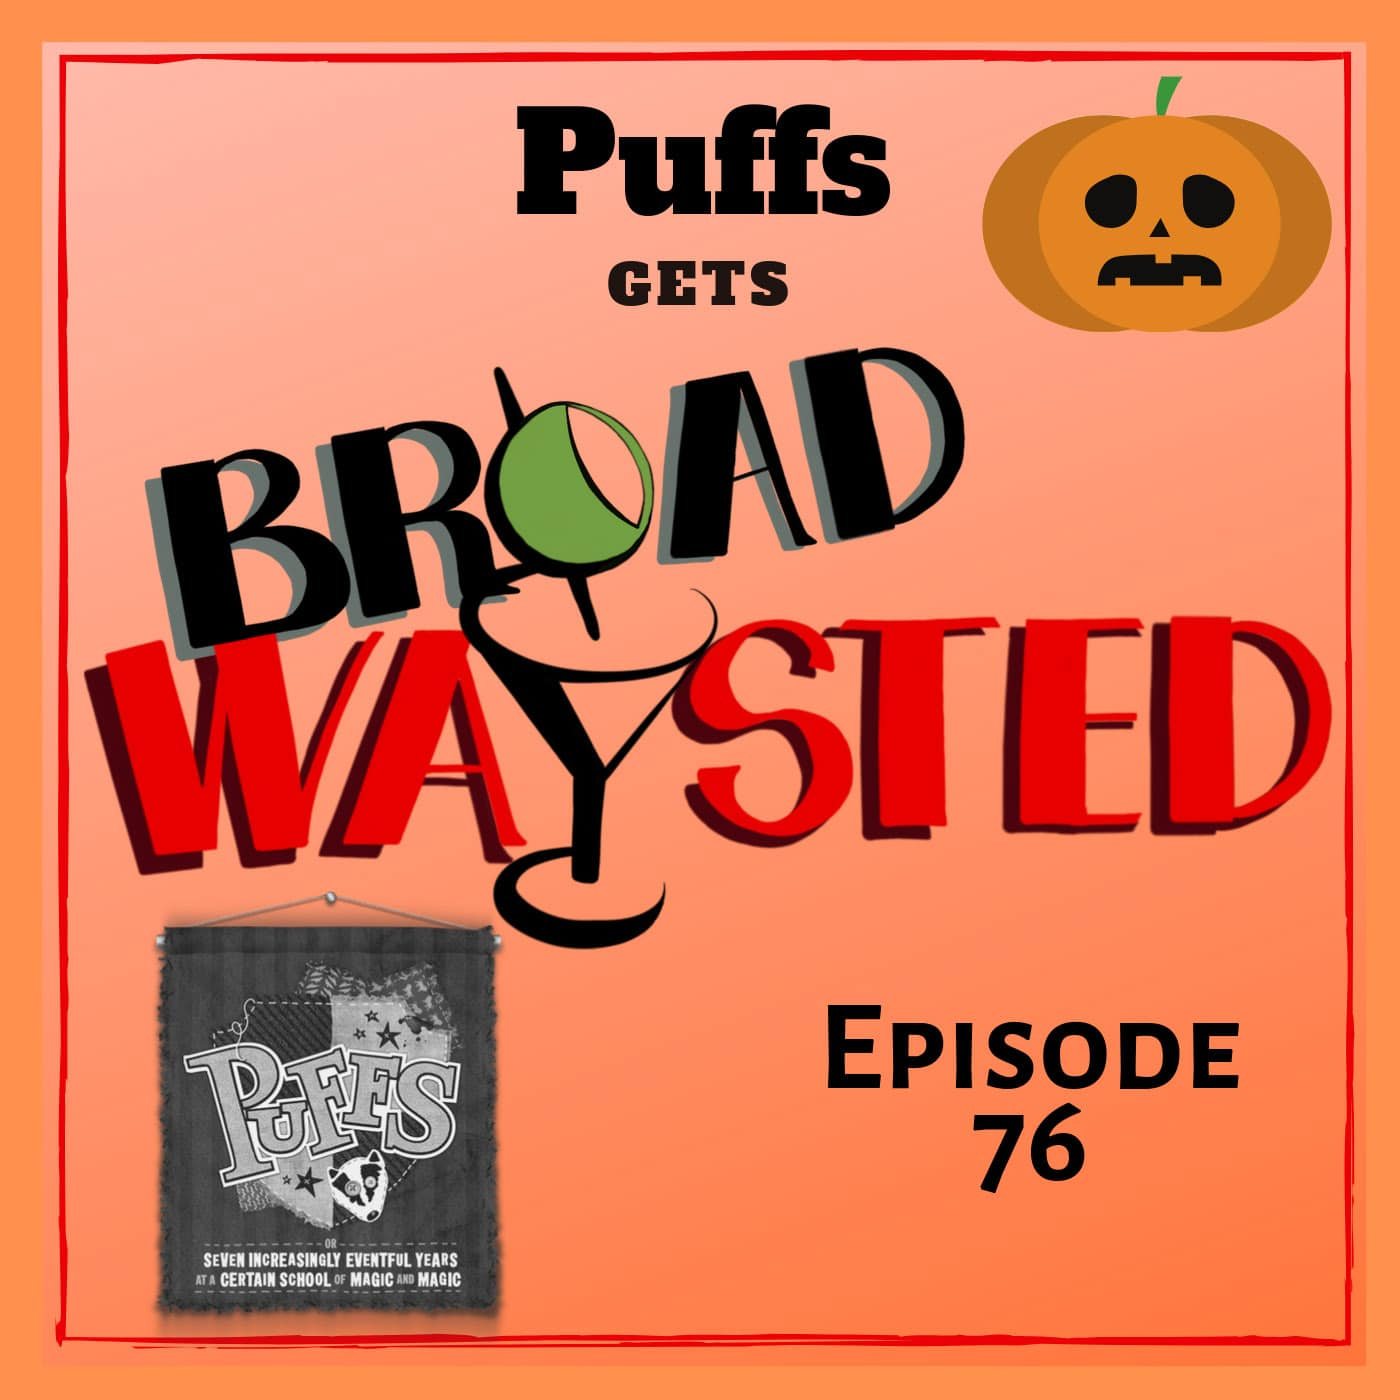 Broadwaysted Ep 76 Puffs